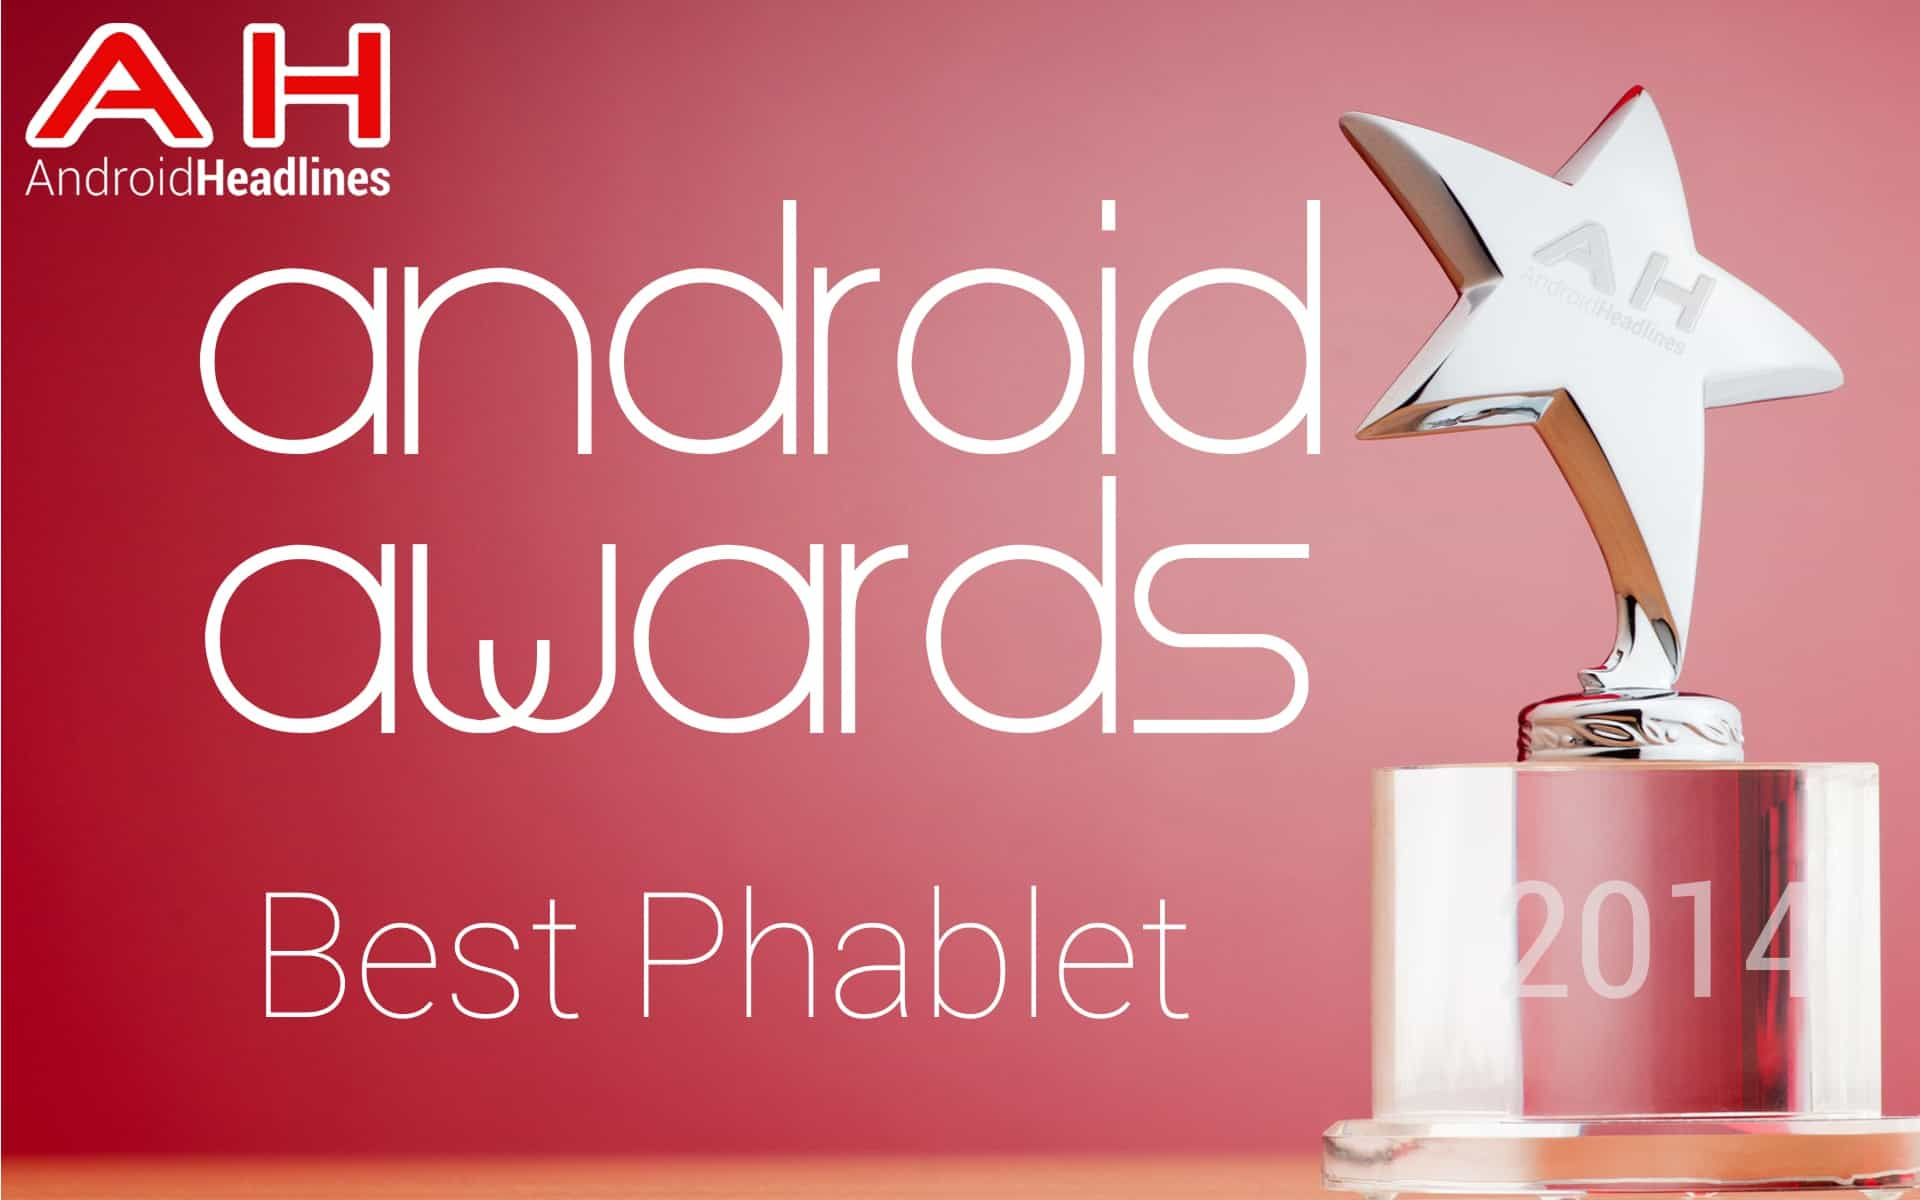 AH Awards 2014 Best Phablet of the year